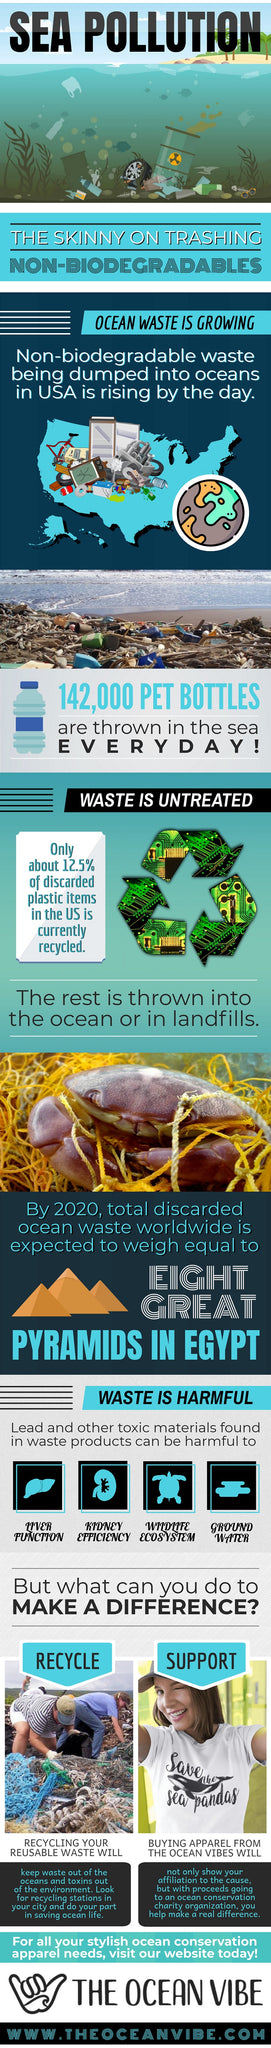 Image showing infographic for sea pollution